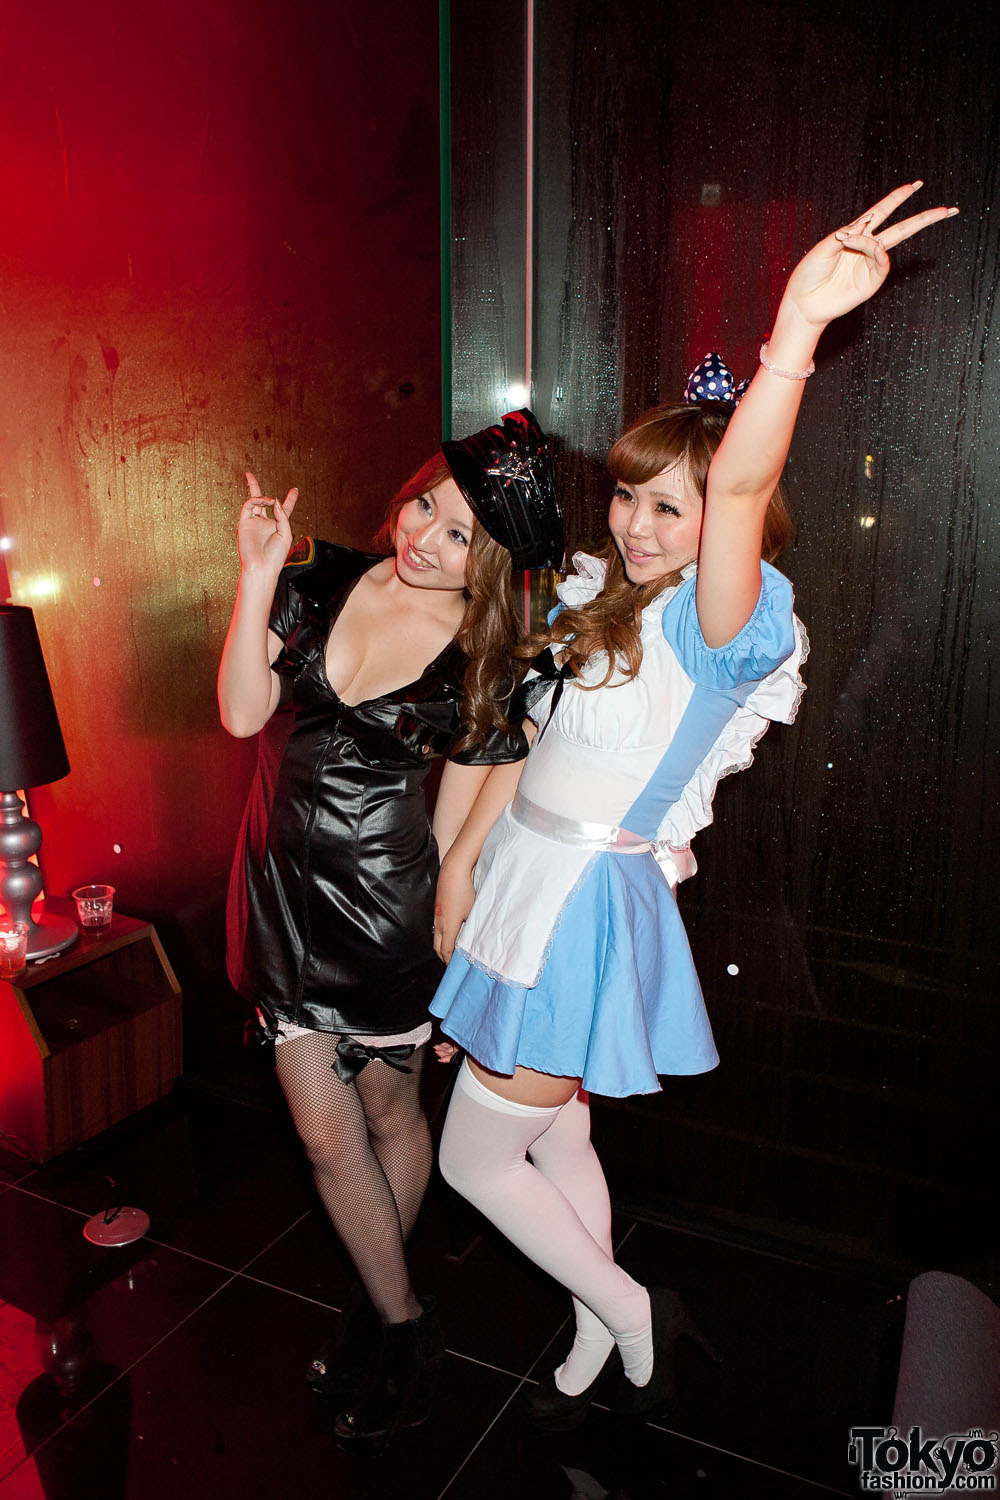 http://tokyofashion.com/wp-content/uploads/2011/11/Tokyo-Halloween-American-Apparel-Afterparty-2011-063.jpg